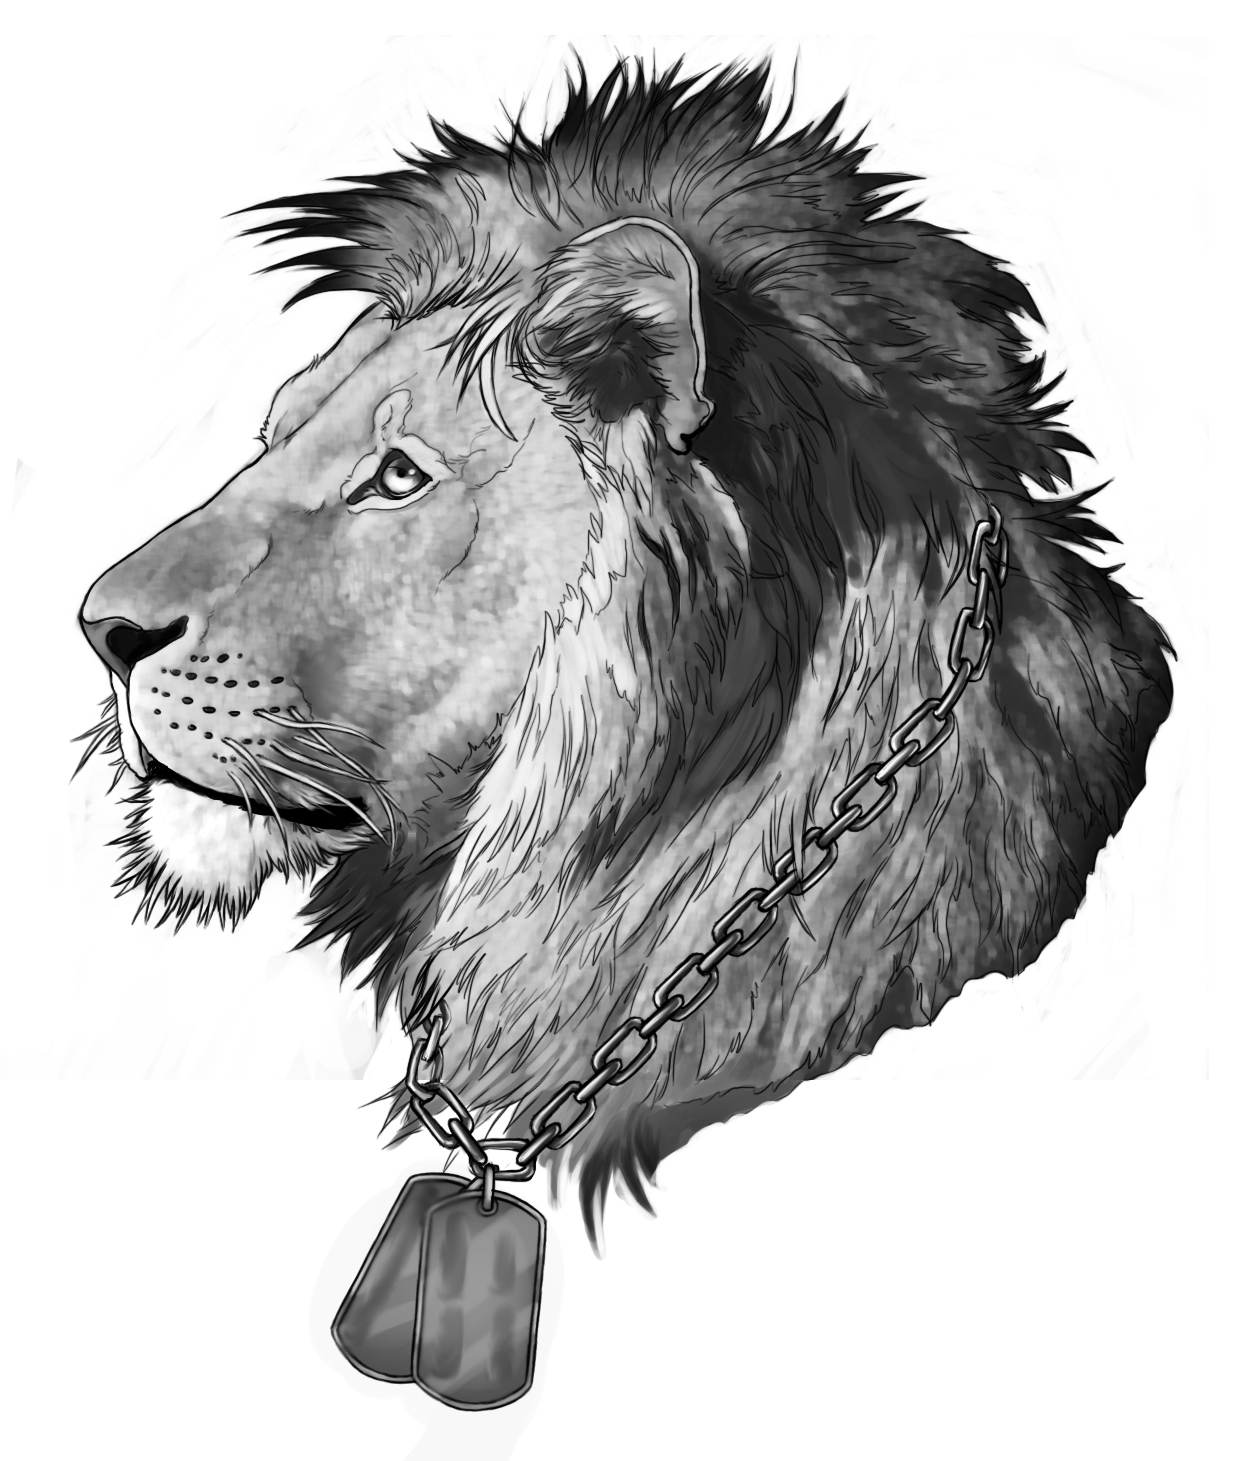 Lion Tattoos Designs And Ideas Page 8